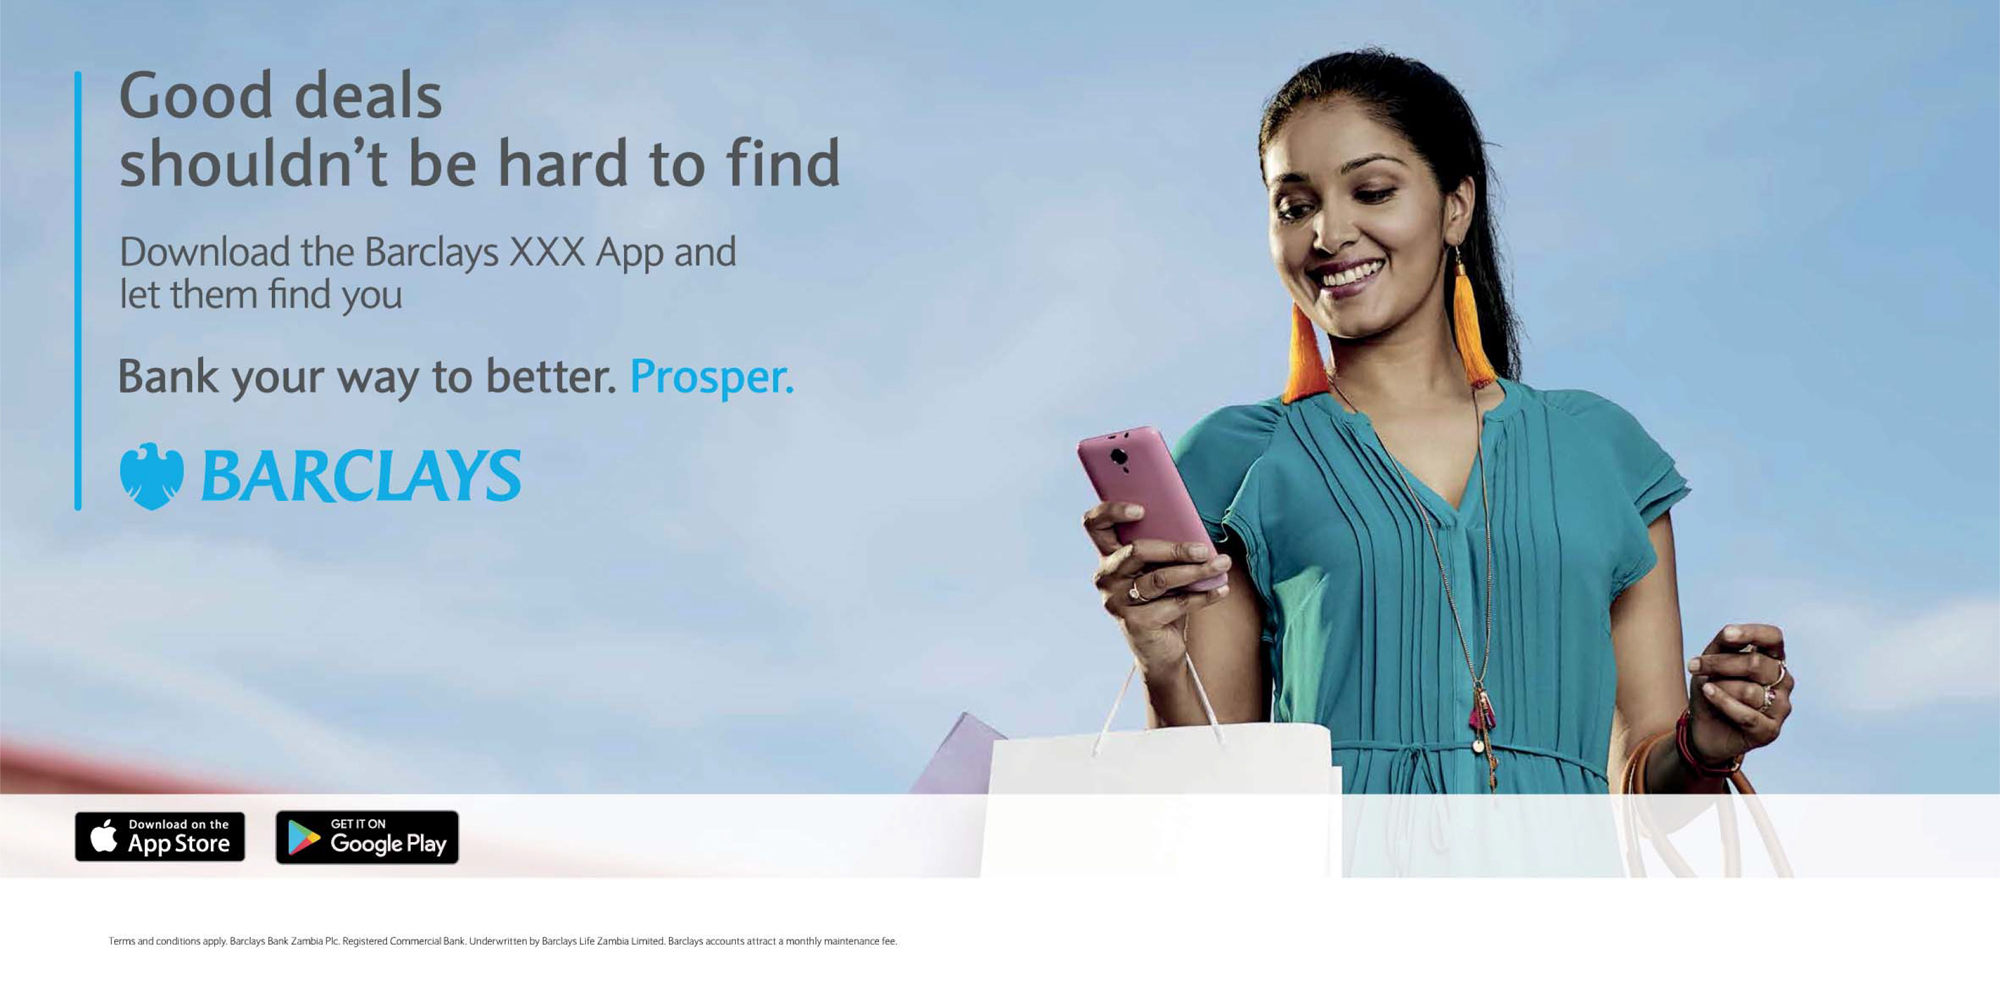 Barclays Personal Banking Campaign Toolkit 26 APRIL-55.jpg